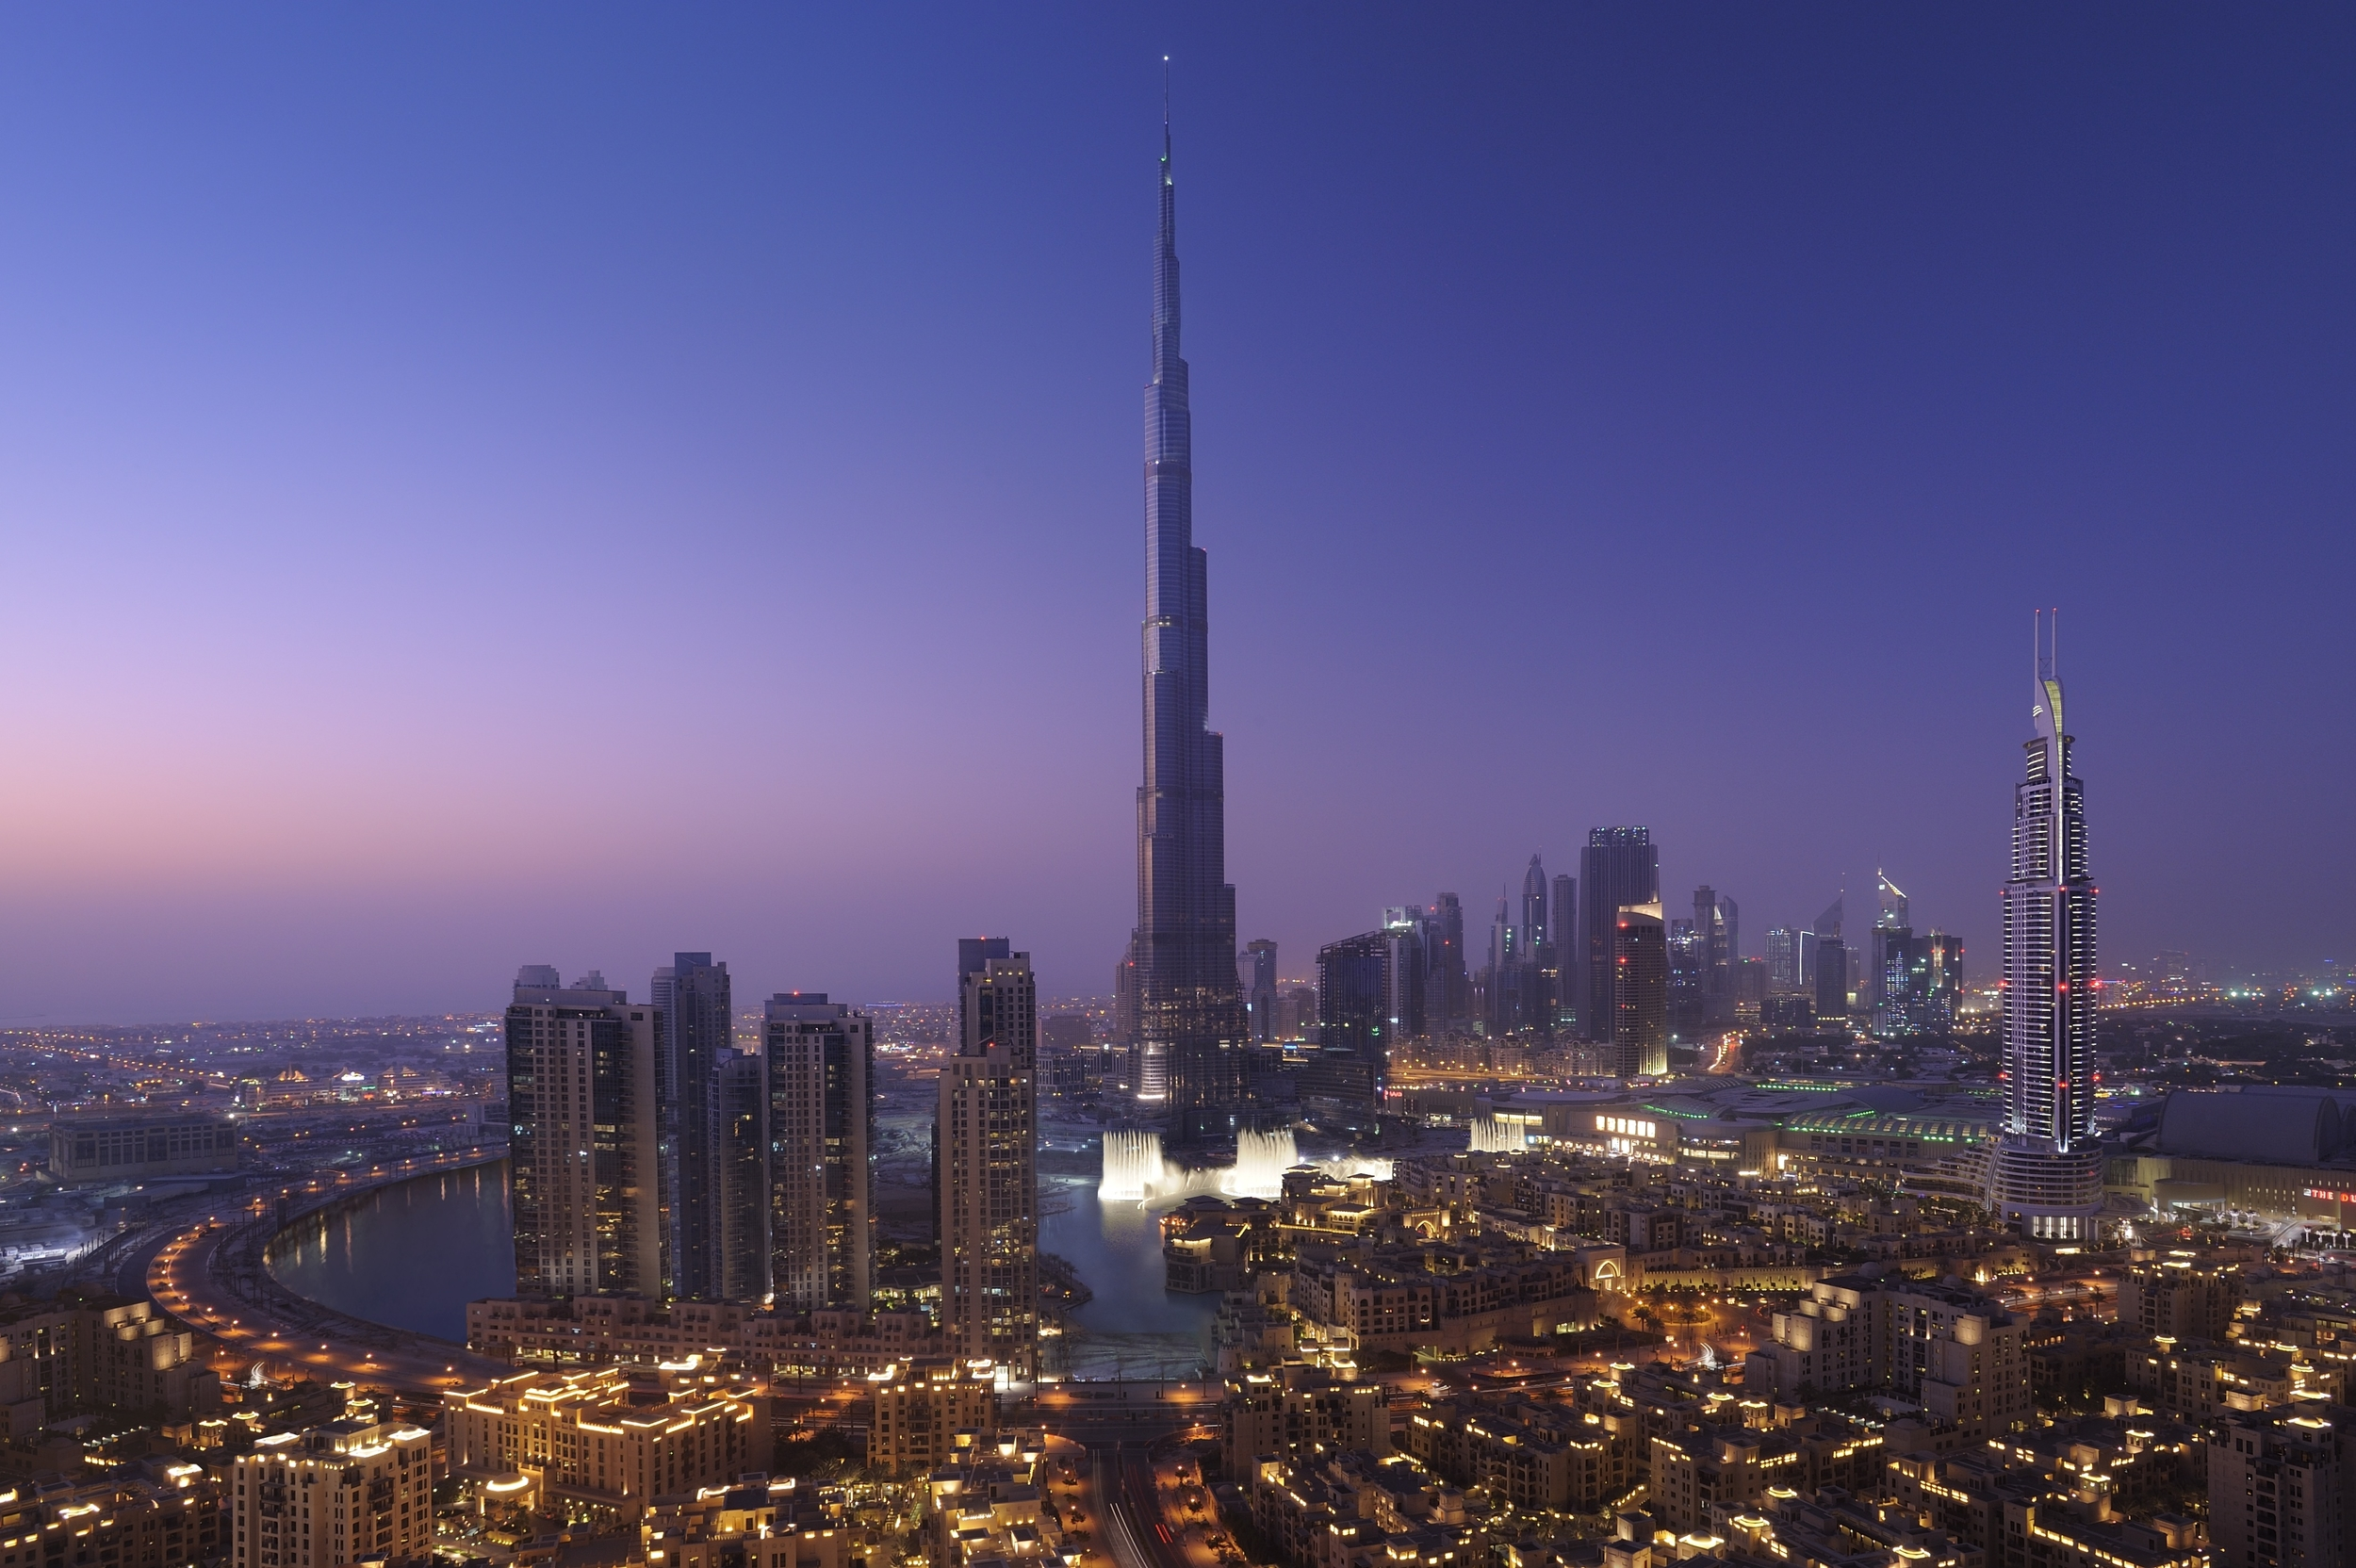 Downtown Dubai1.JPG